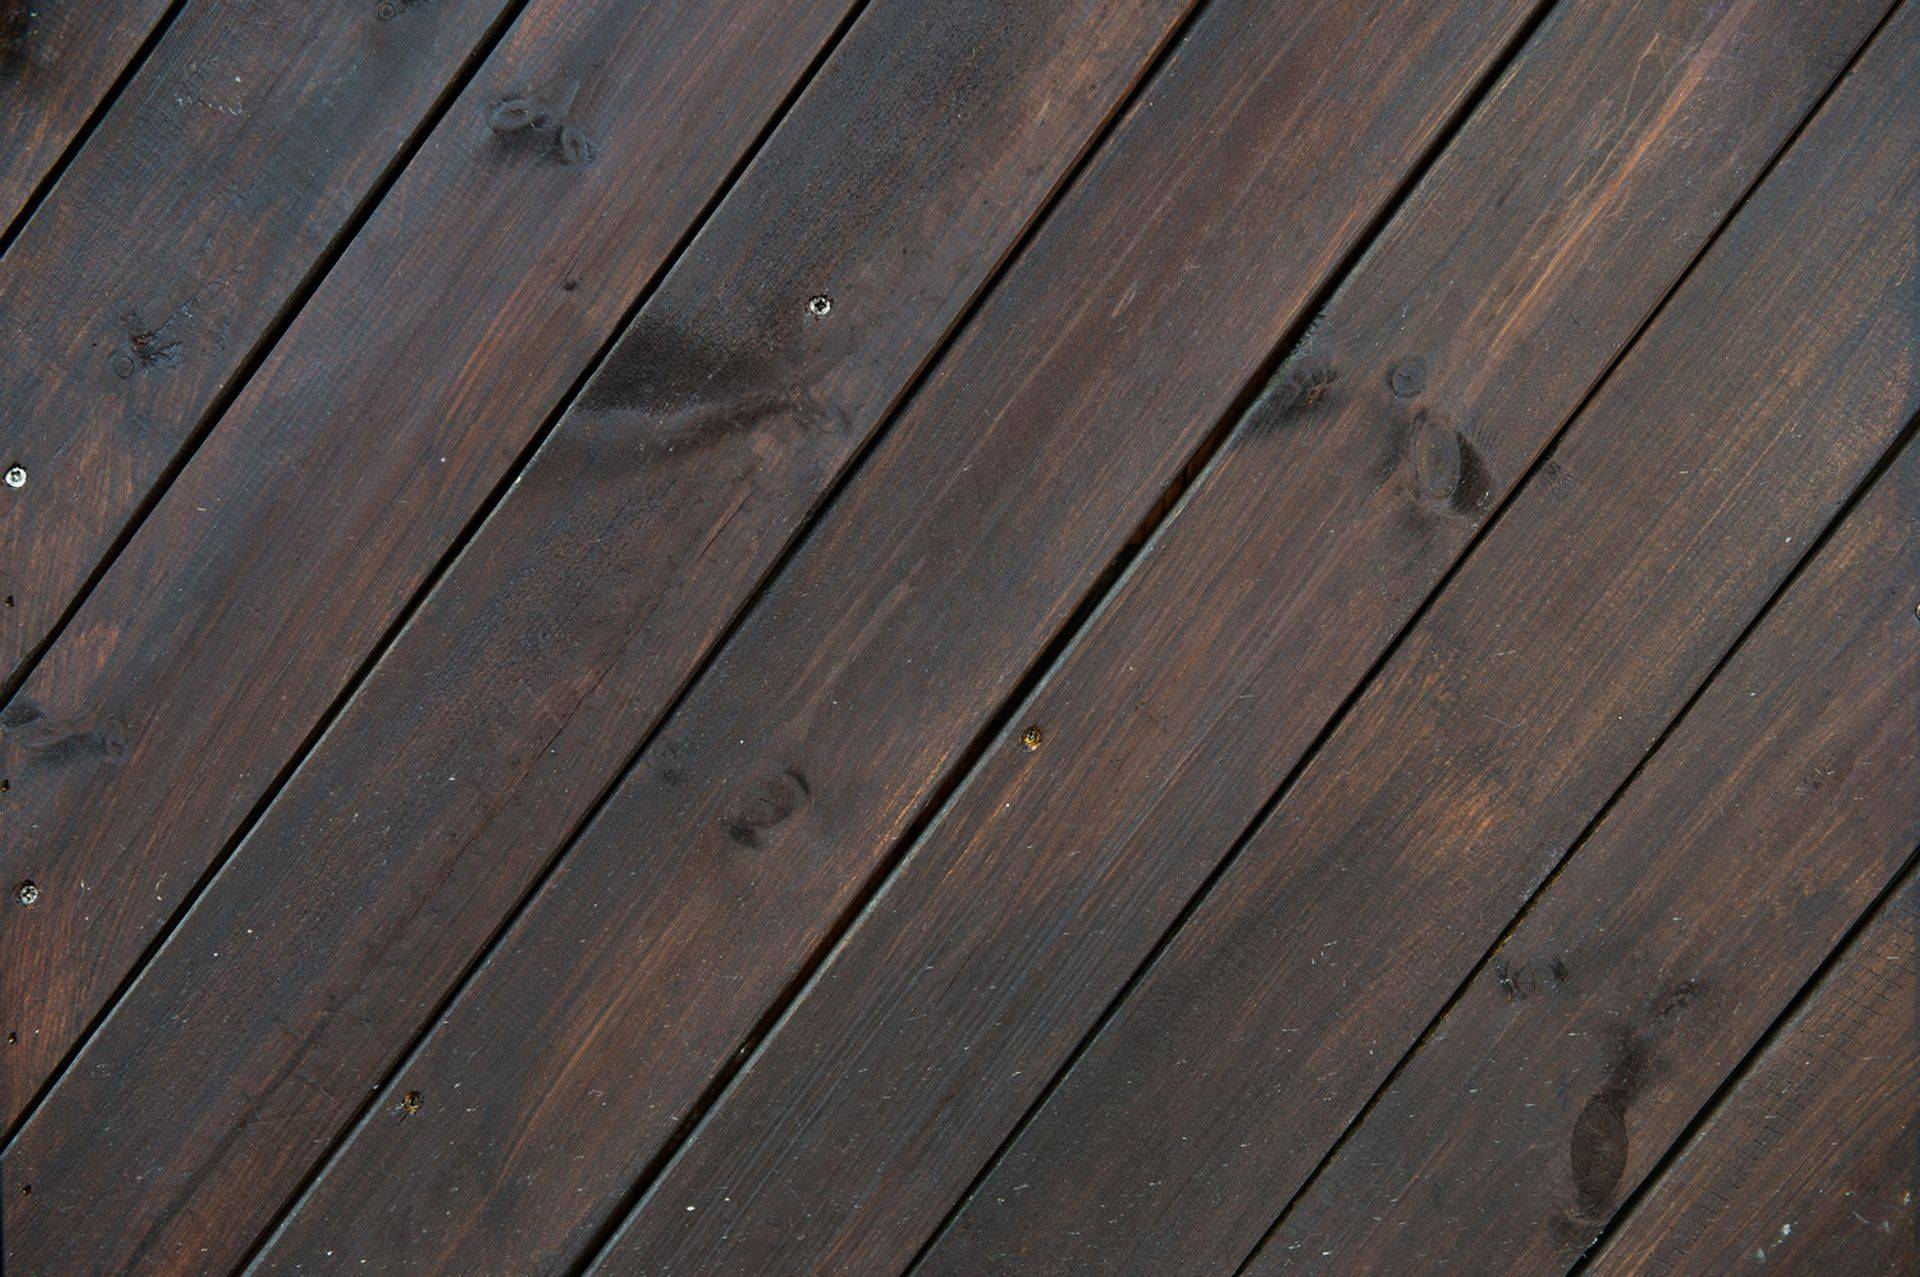 A sample of a wooden deck